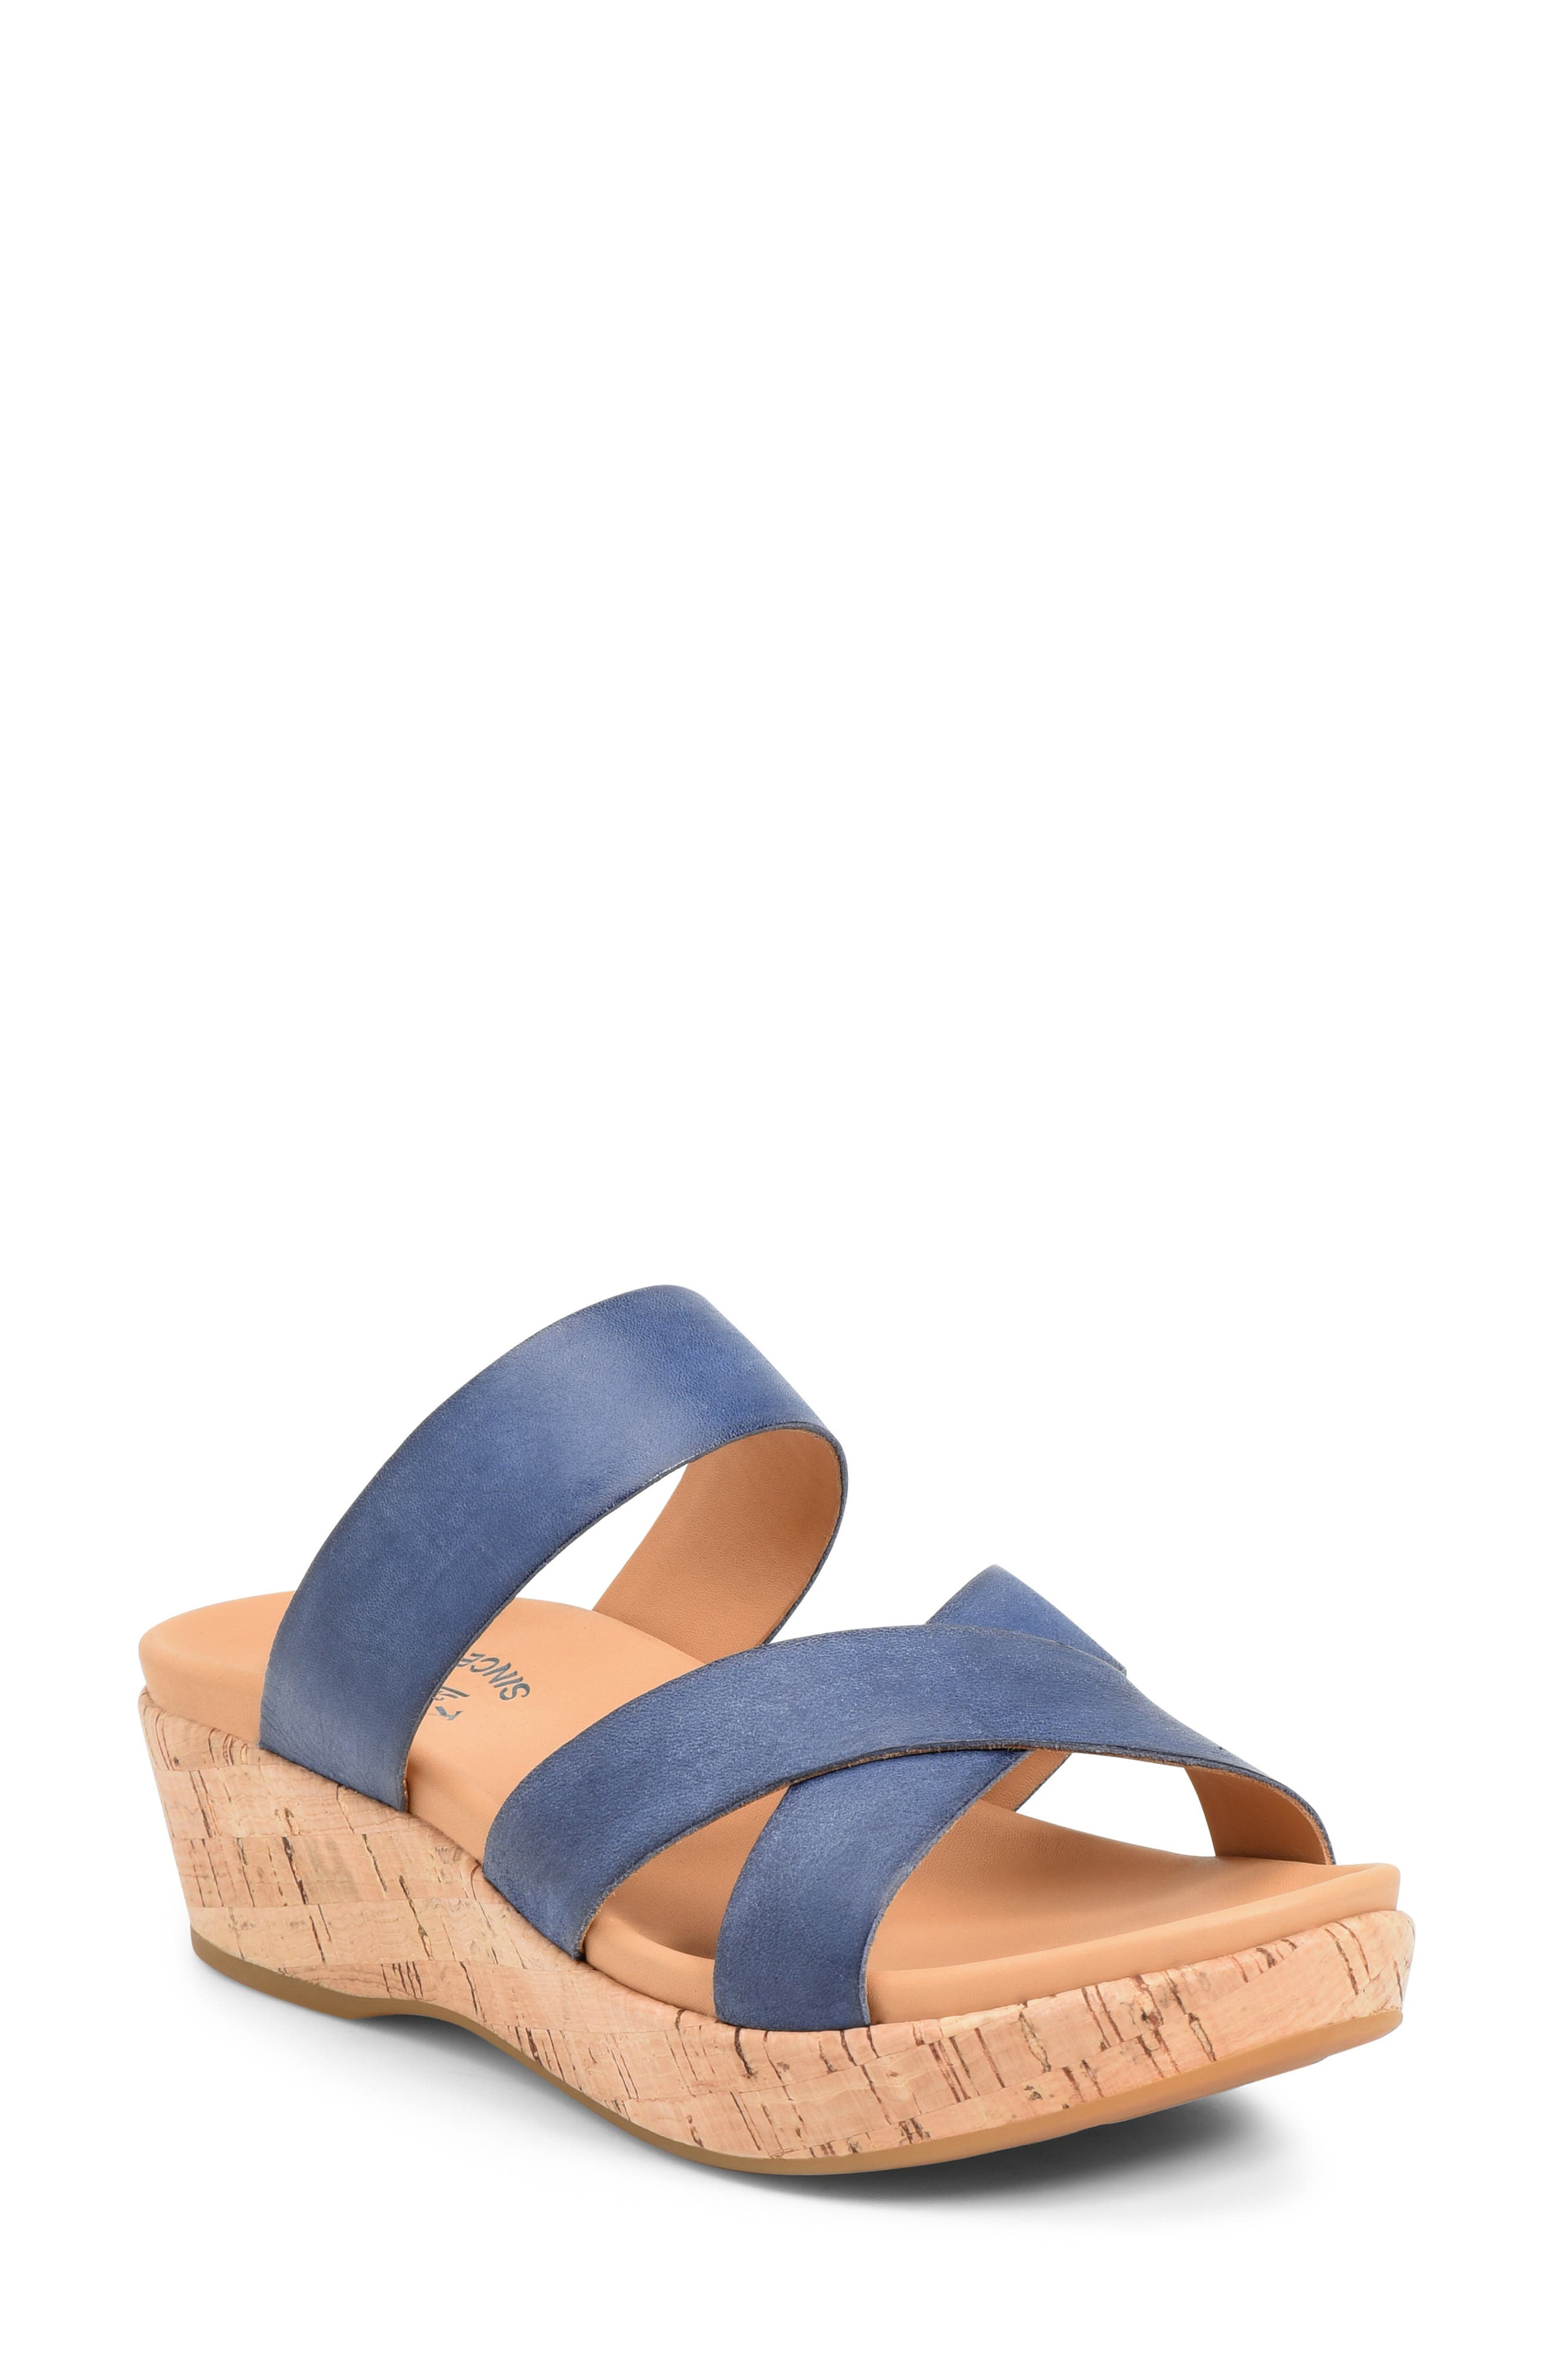 Signature cork covers the platform and wedge heel of this strappy slide sandal that offers all-day comfort and easygoing style. Style Name: Kork-Ease Camellia Slide Sandal (Women). Style Number: 5789537. Available in stores.